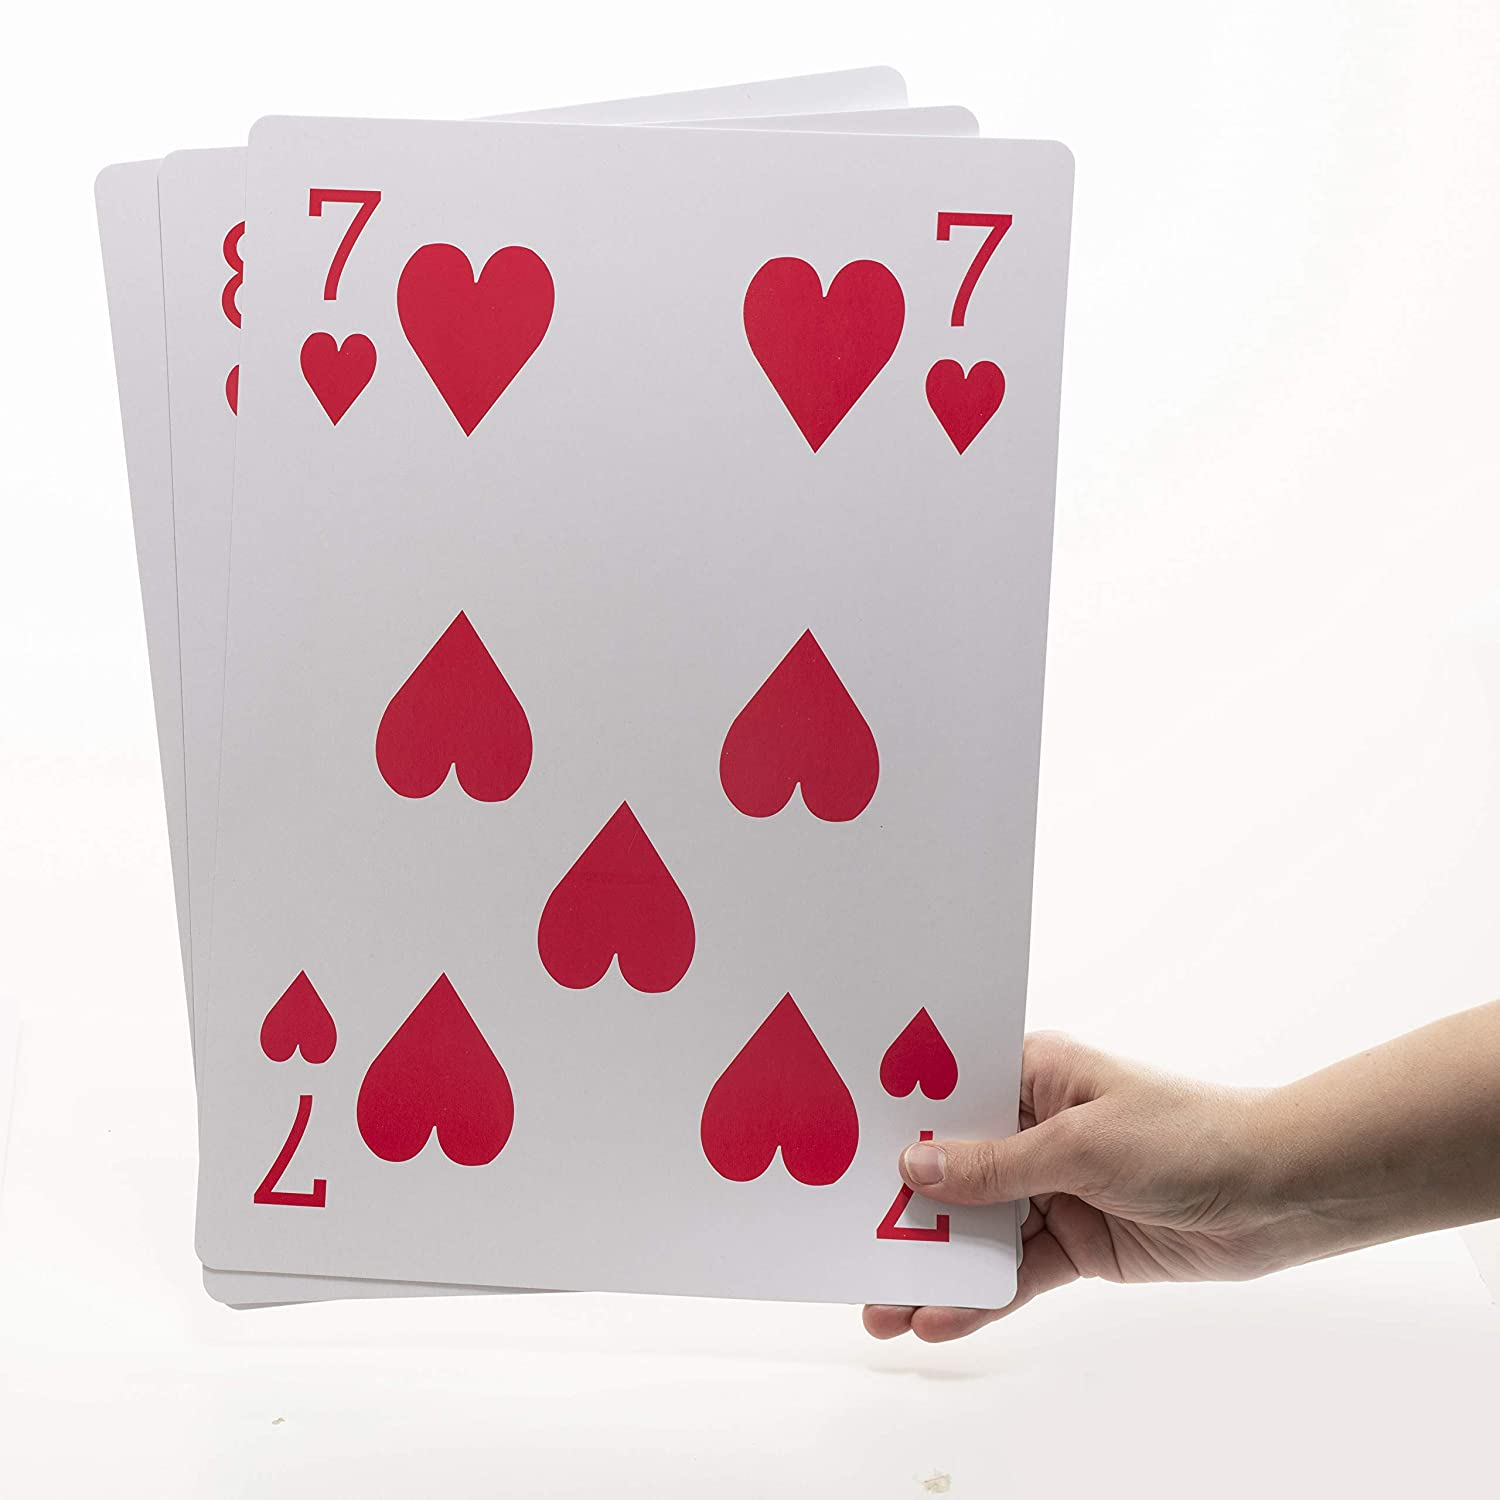 Jumbo Playing Cards Full Deck Huge Poker Index Giant Playing Cards Fun for All Ages! - Size 8.5 x 11 Inches